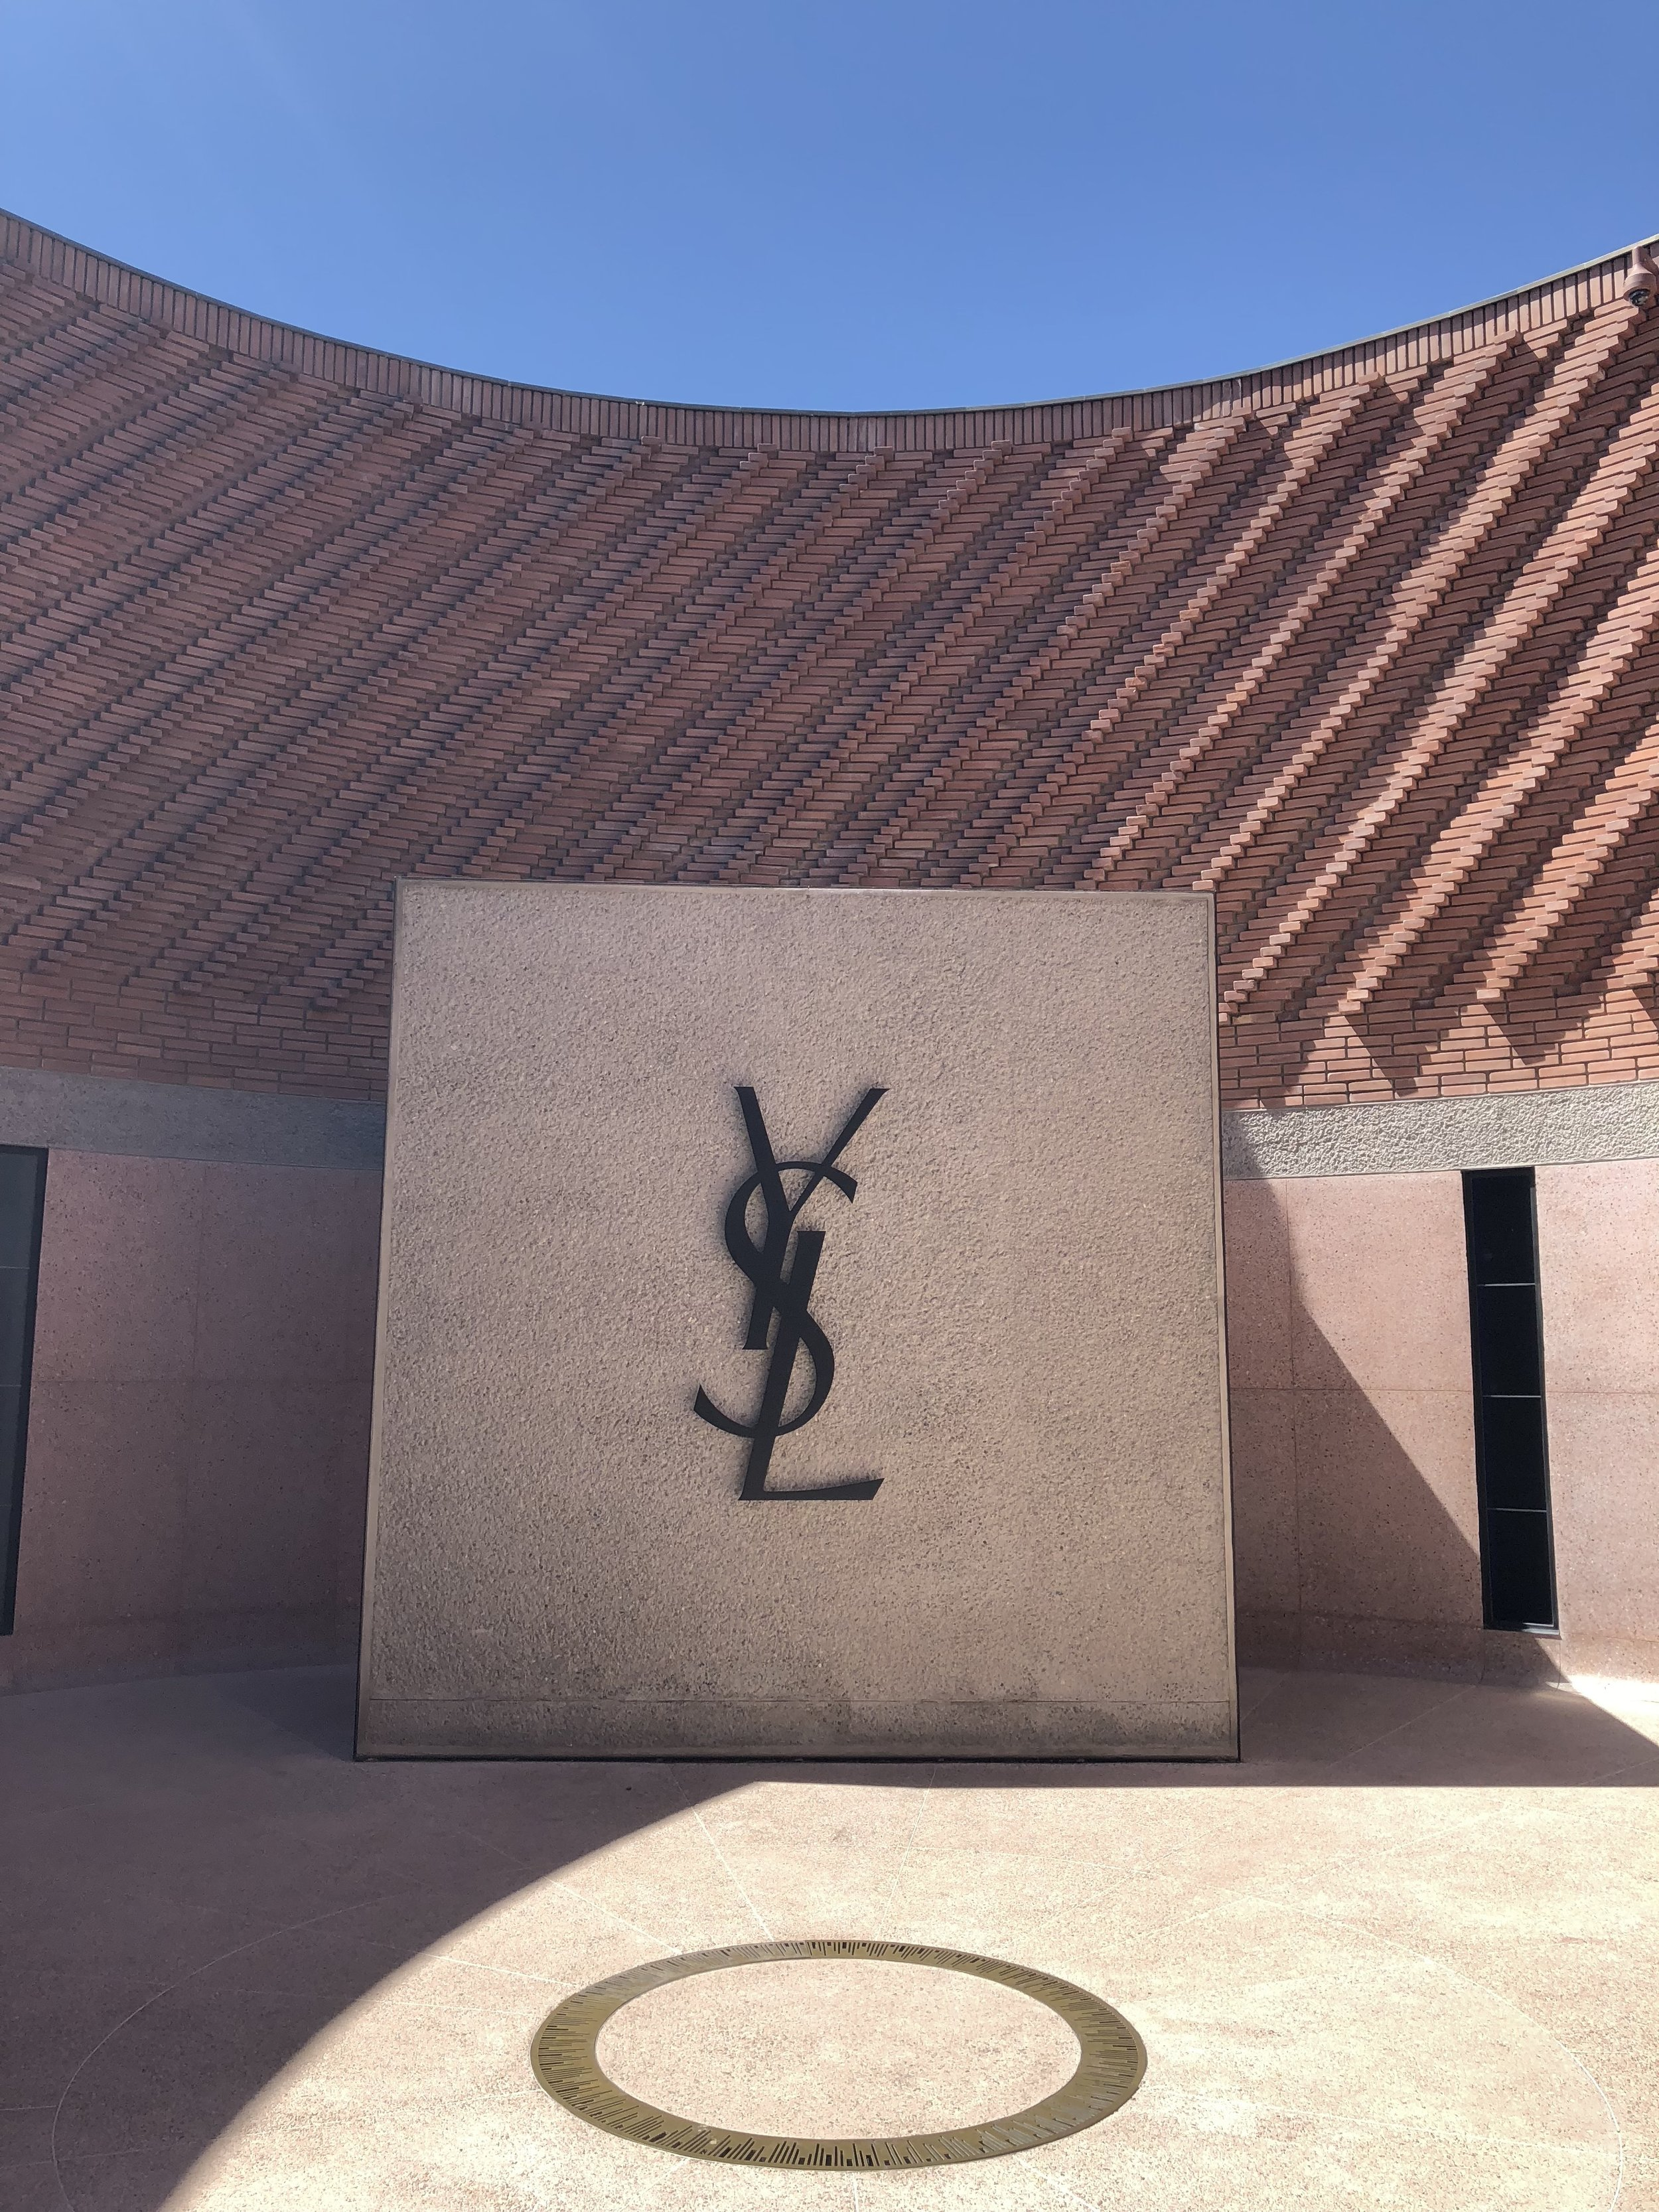 Even if you don't go inside, the architecture of the YSL museum is absolutely stunning